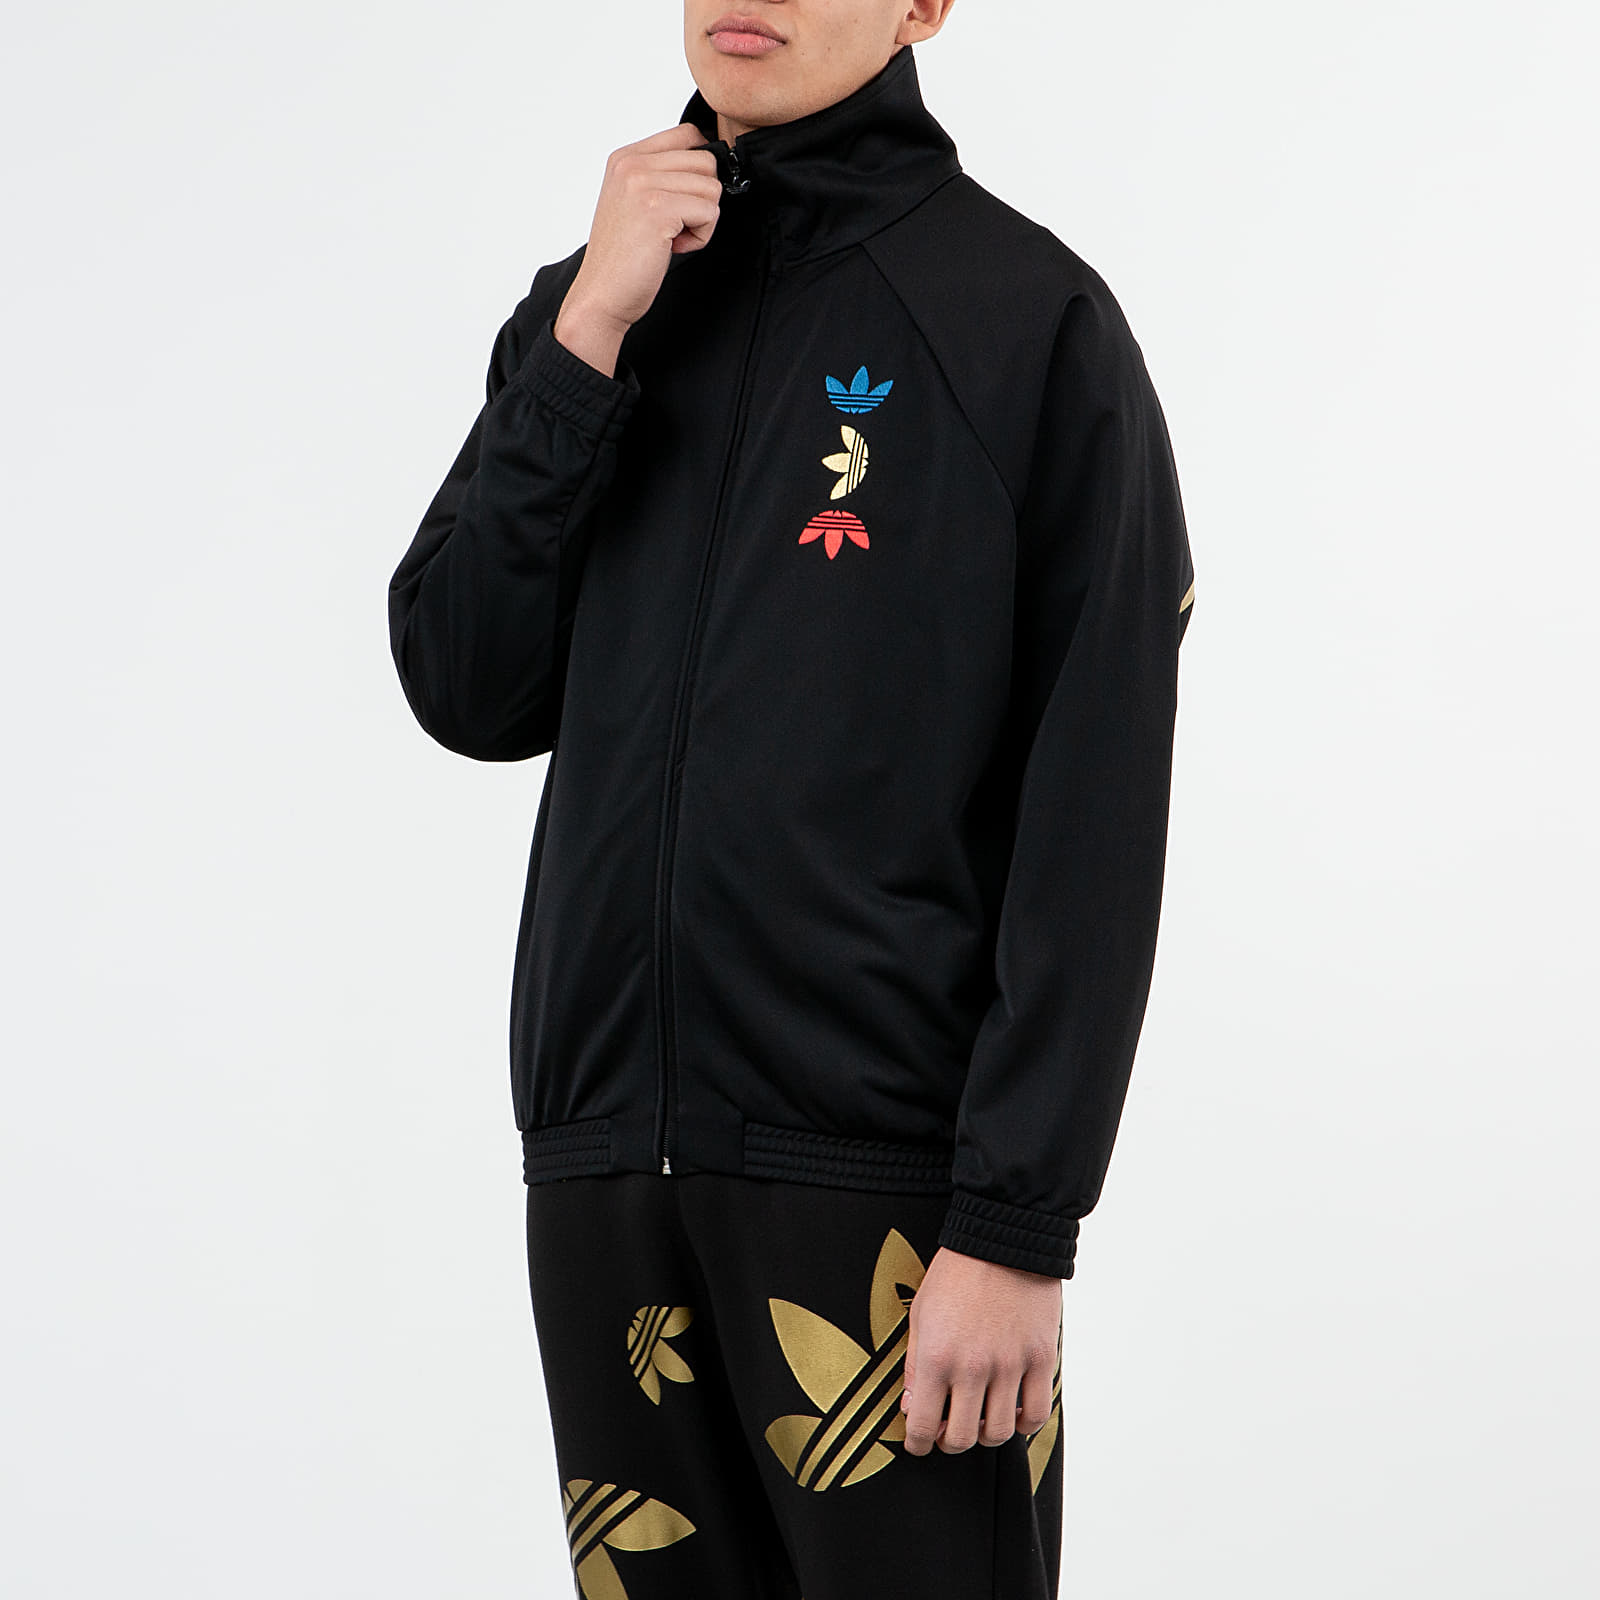 Sweatshirts adidas Reflective/ Metallic Track Top Black/ Platin Metallic